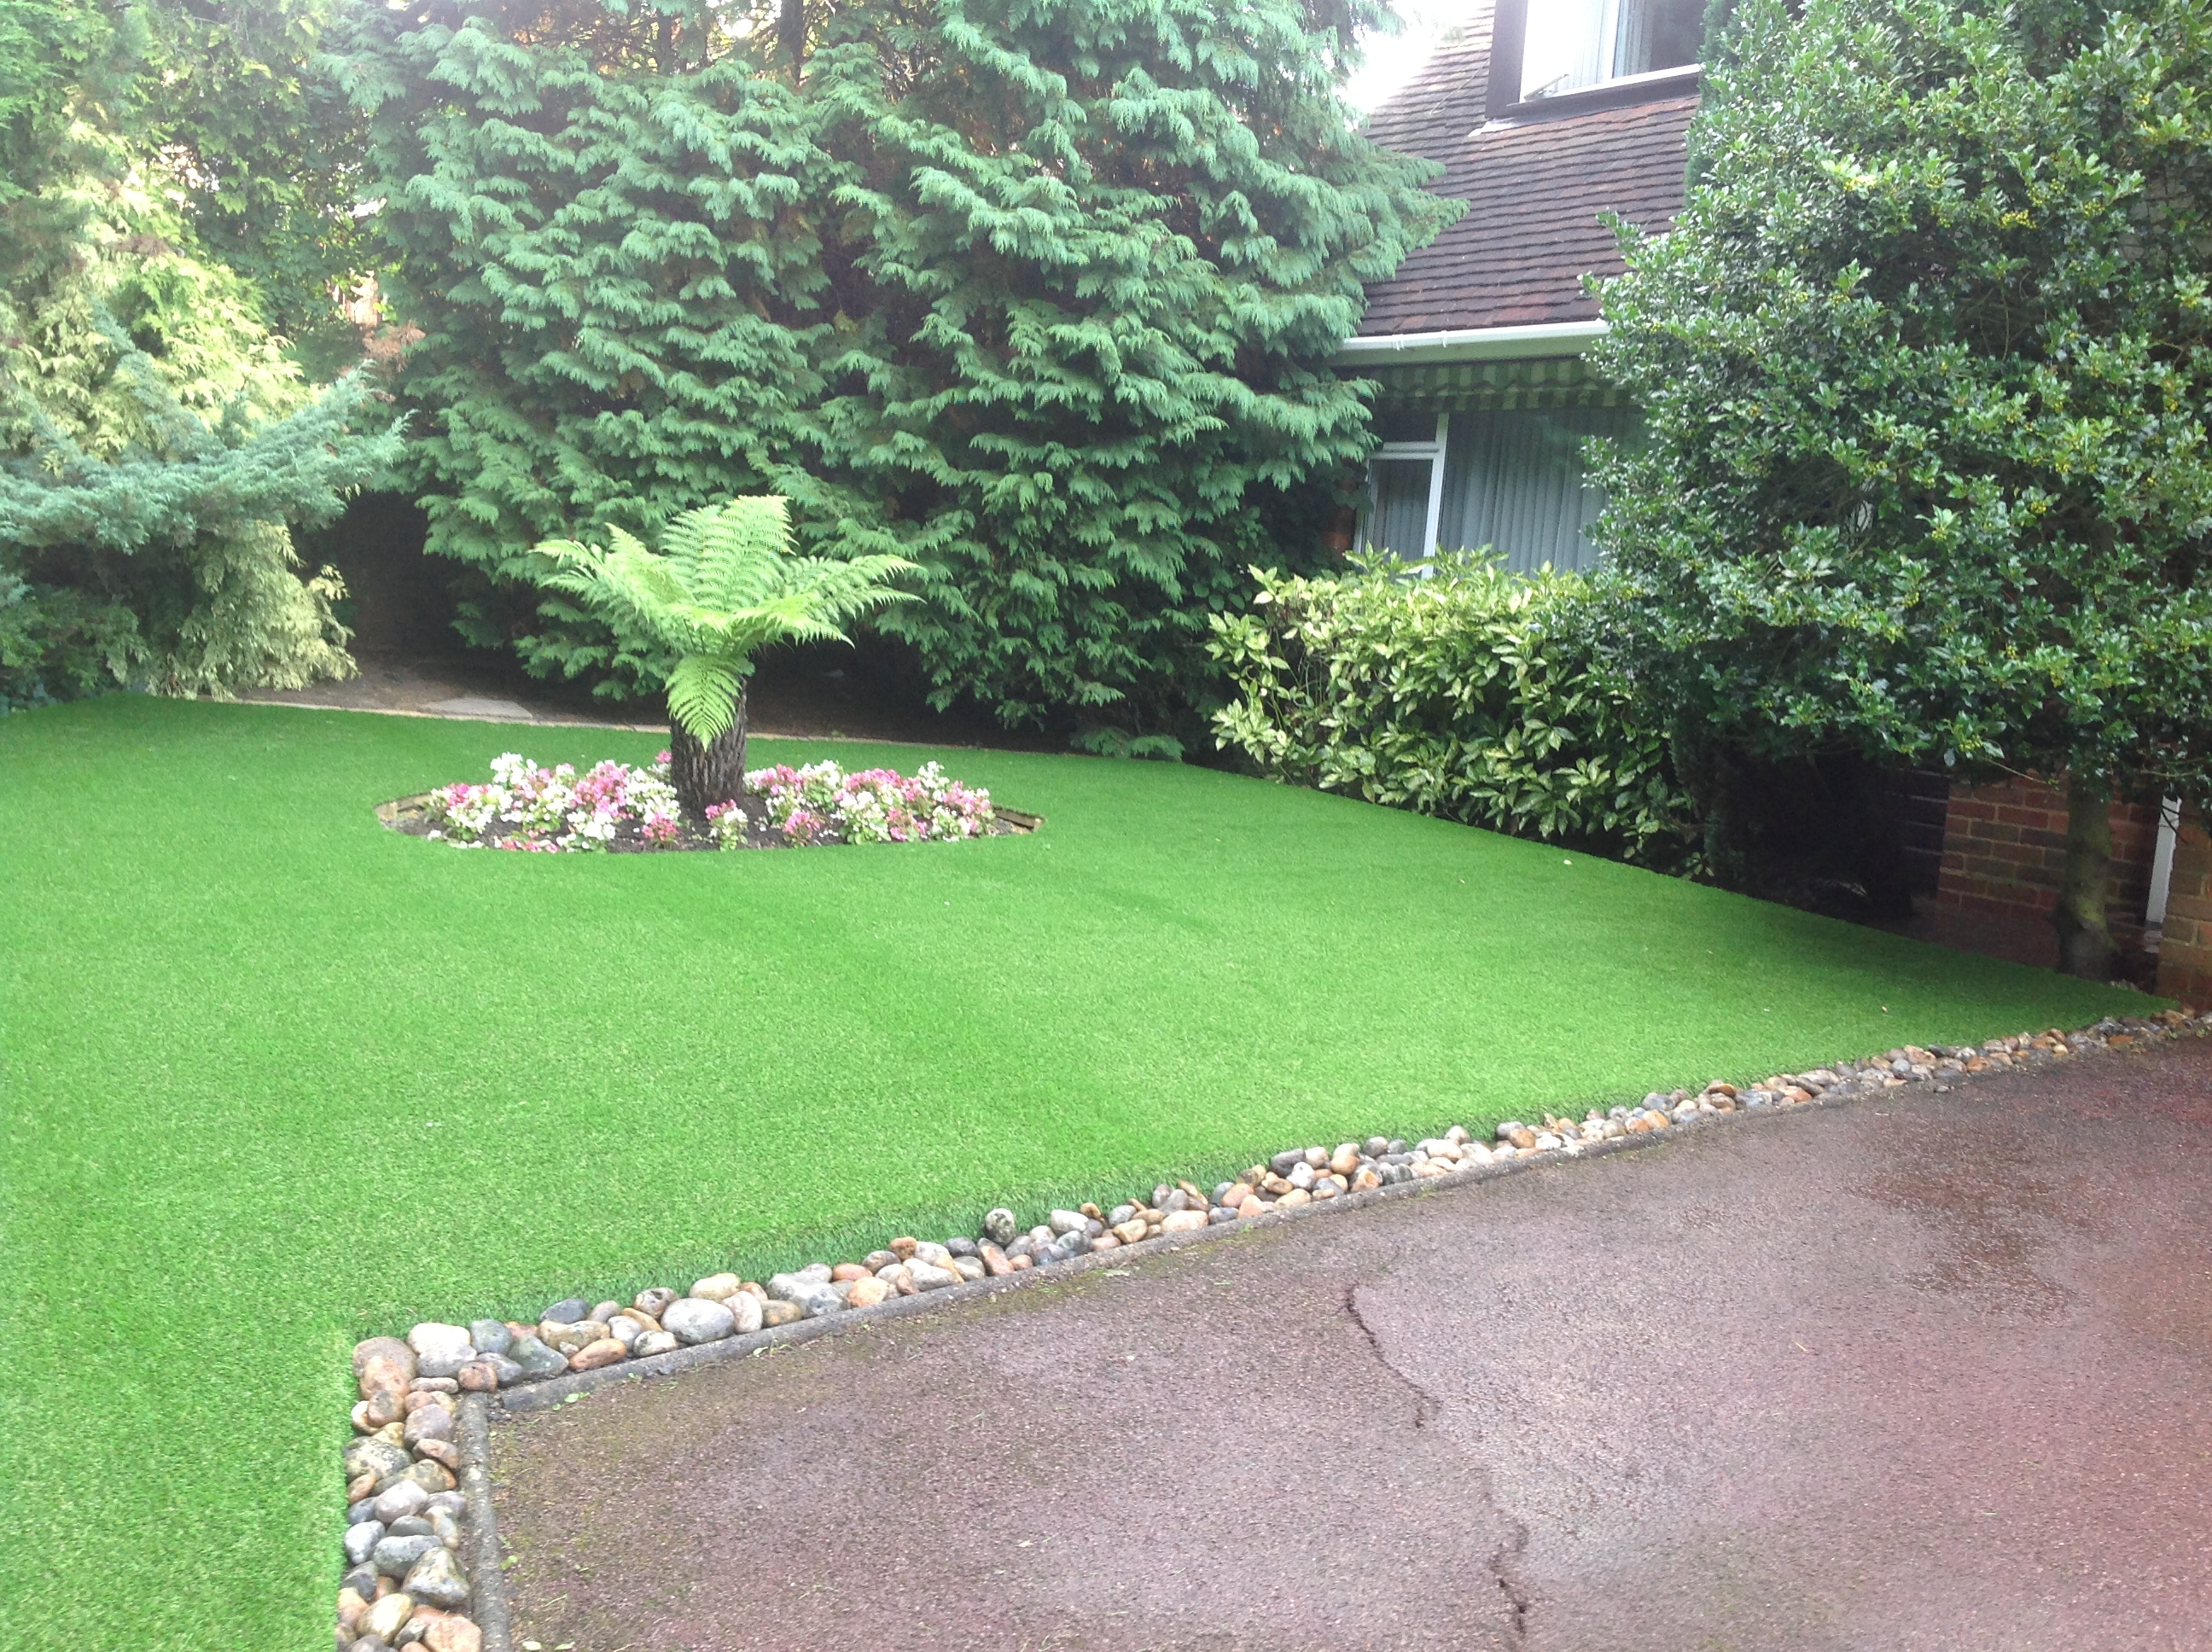 Artificial turf pros and cons - Could Mowing The Lawn Be A Thing Of The Past